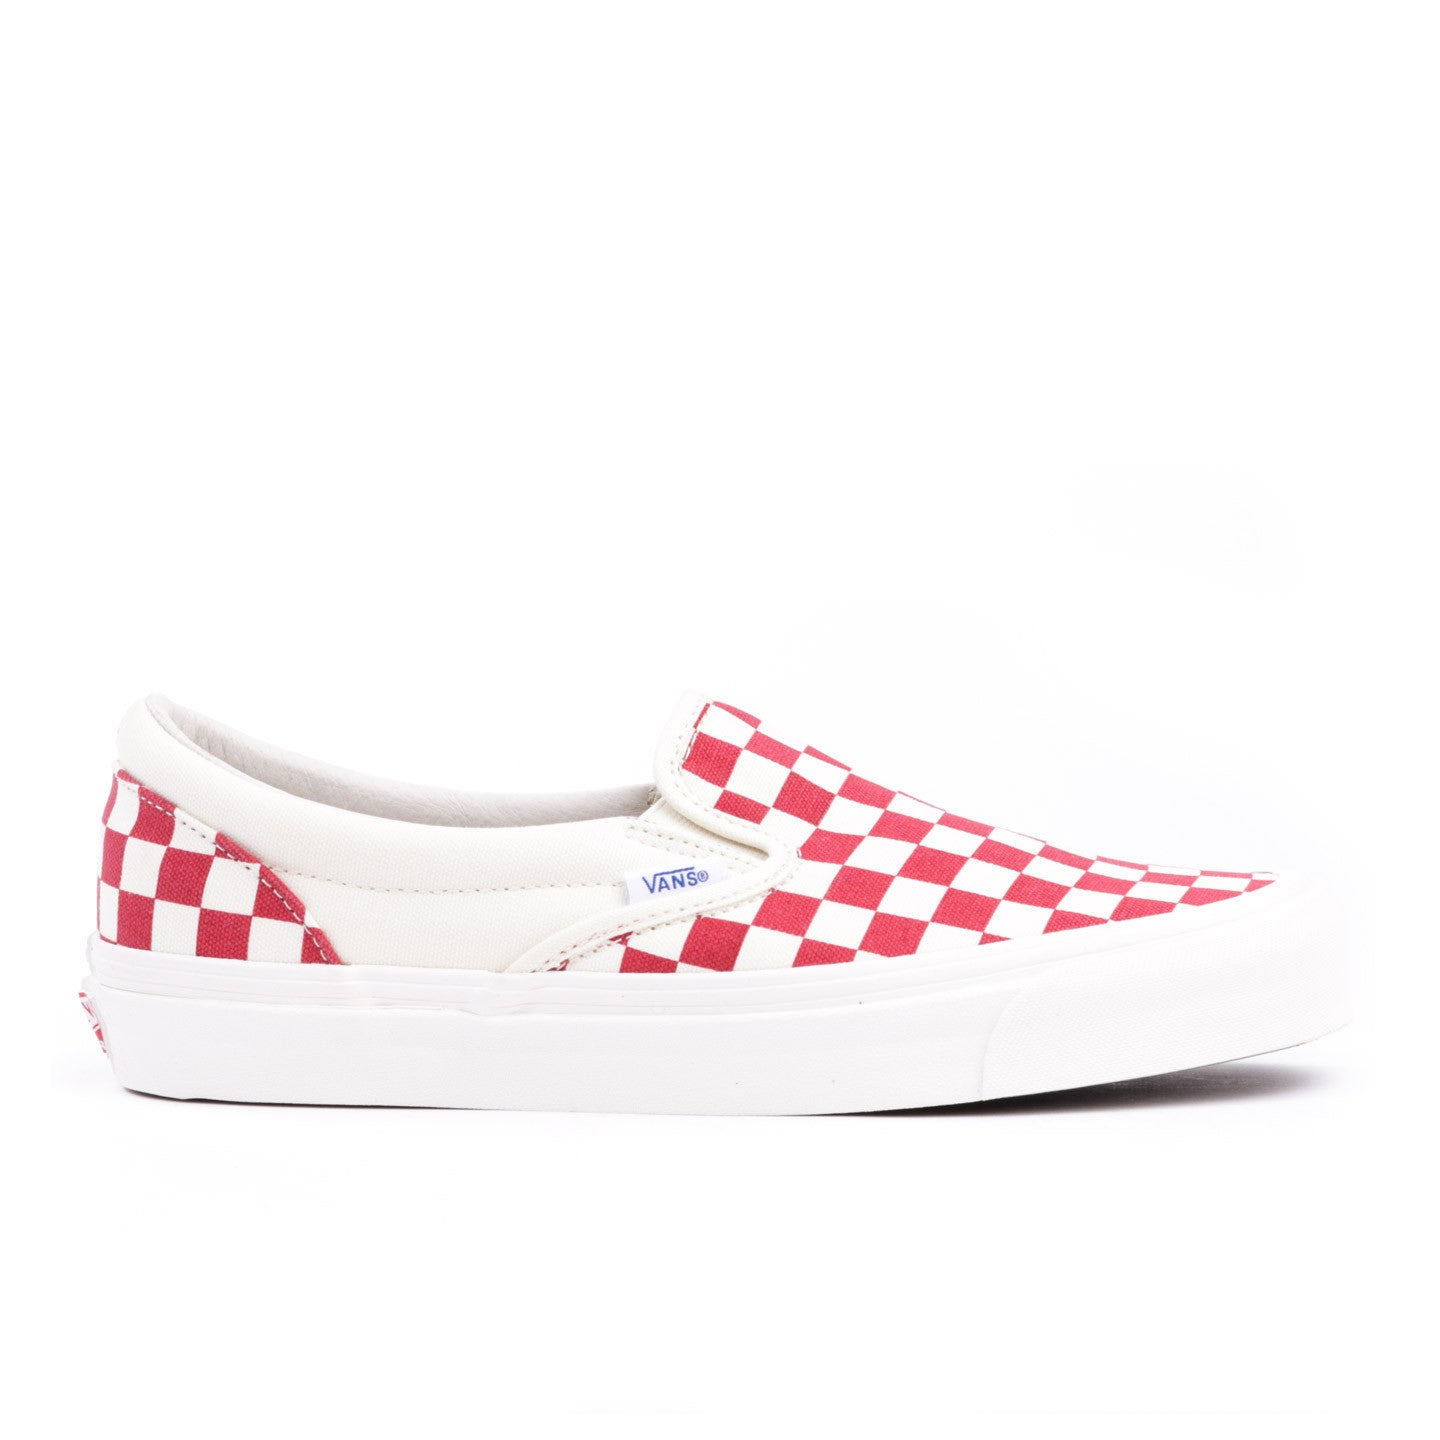 VAULT BY VANS OG CLASSIC SLIP-ON LX RED CHECKERBOARD CANVAS